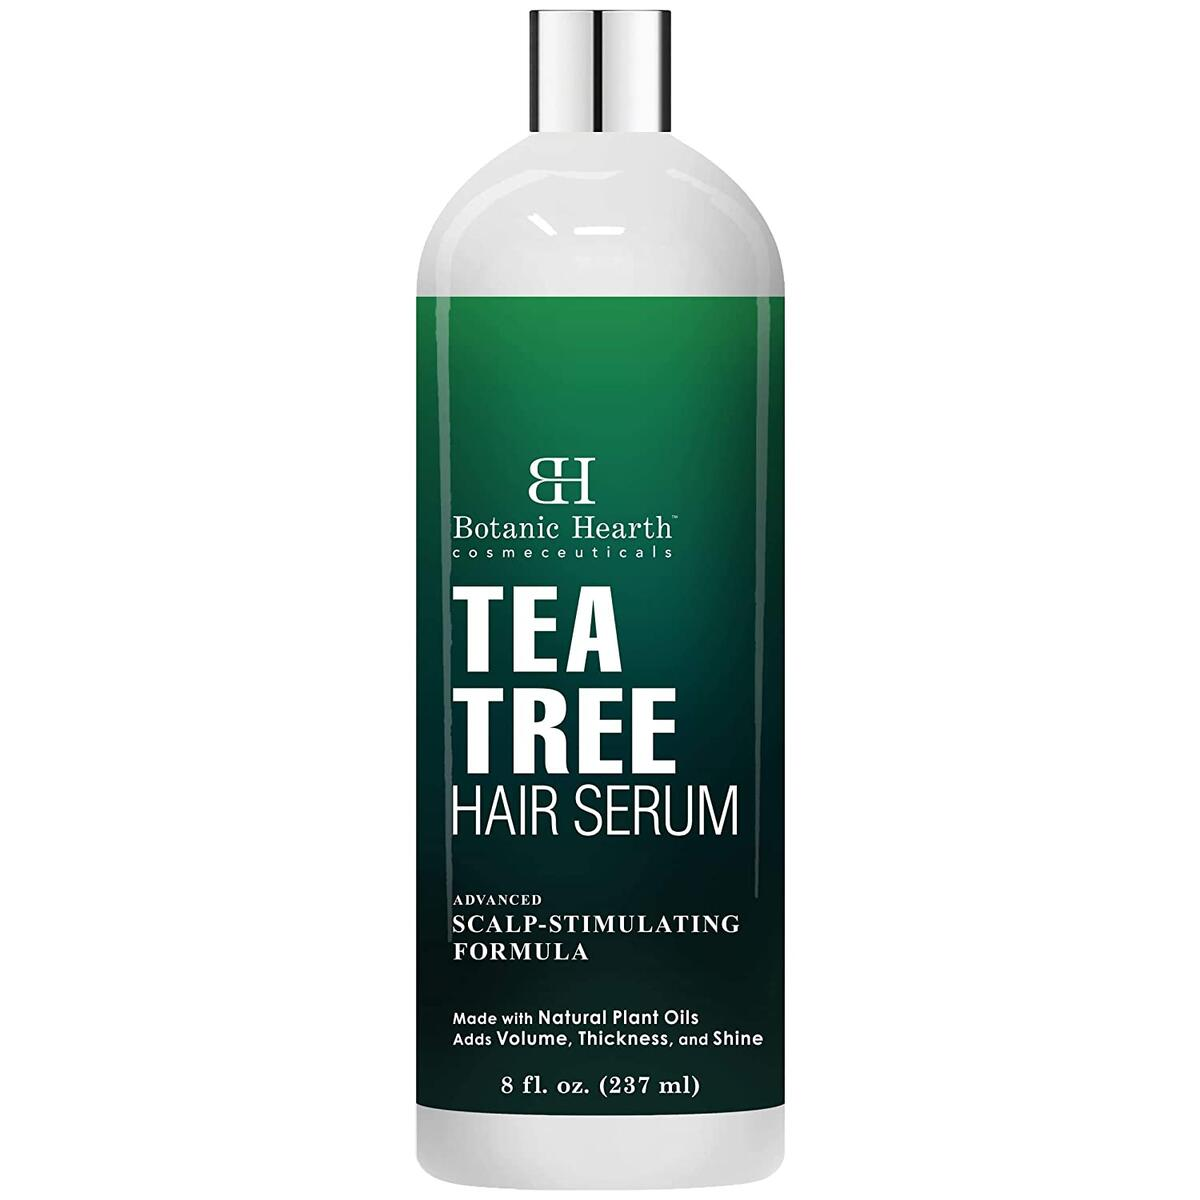 Tea Tree Hair Serum, Hair Growth Stimulating, Made with Natural Plant Oils - Adds Volume, Thickness and Shine - Nourishes & Hydrates Dry & Damaged Hair, for Men and Women - 8 fl oz